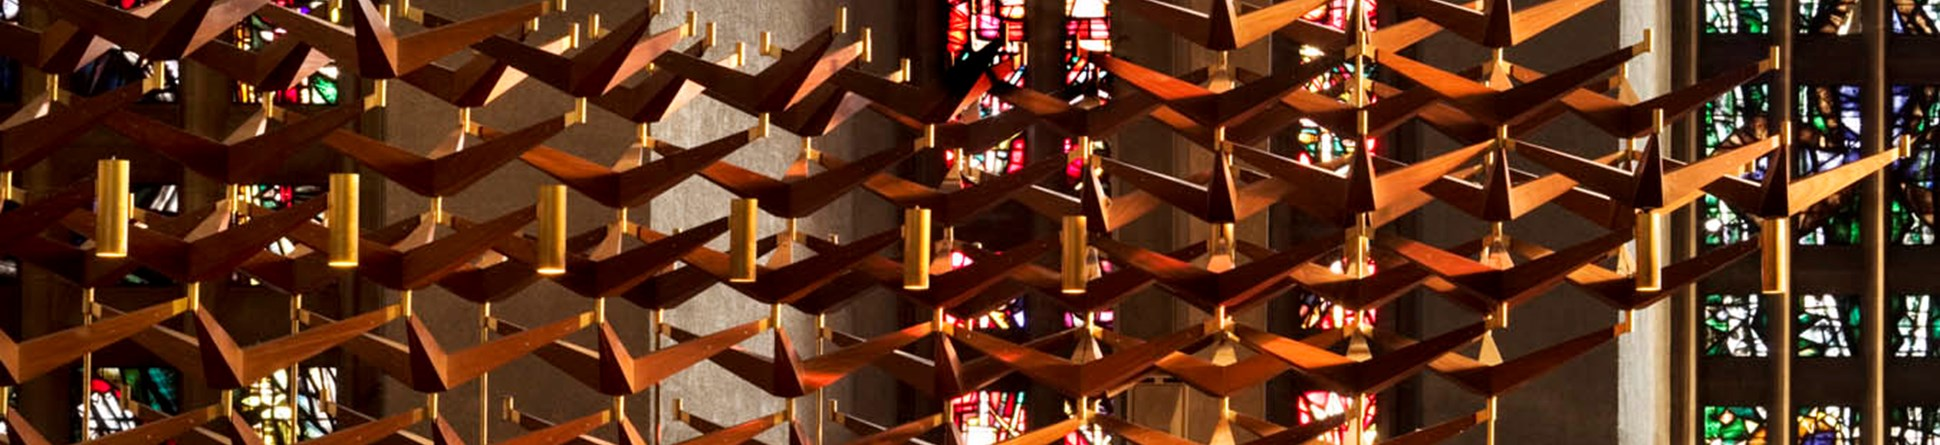 Detail of choir stalls and stained glass in Coventry Cathedral Church of St Michael